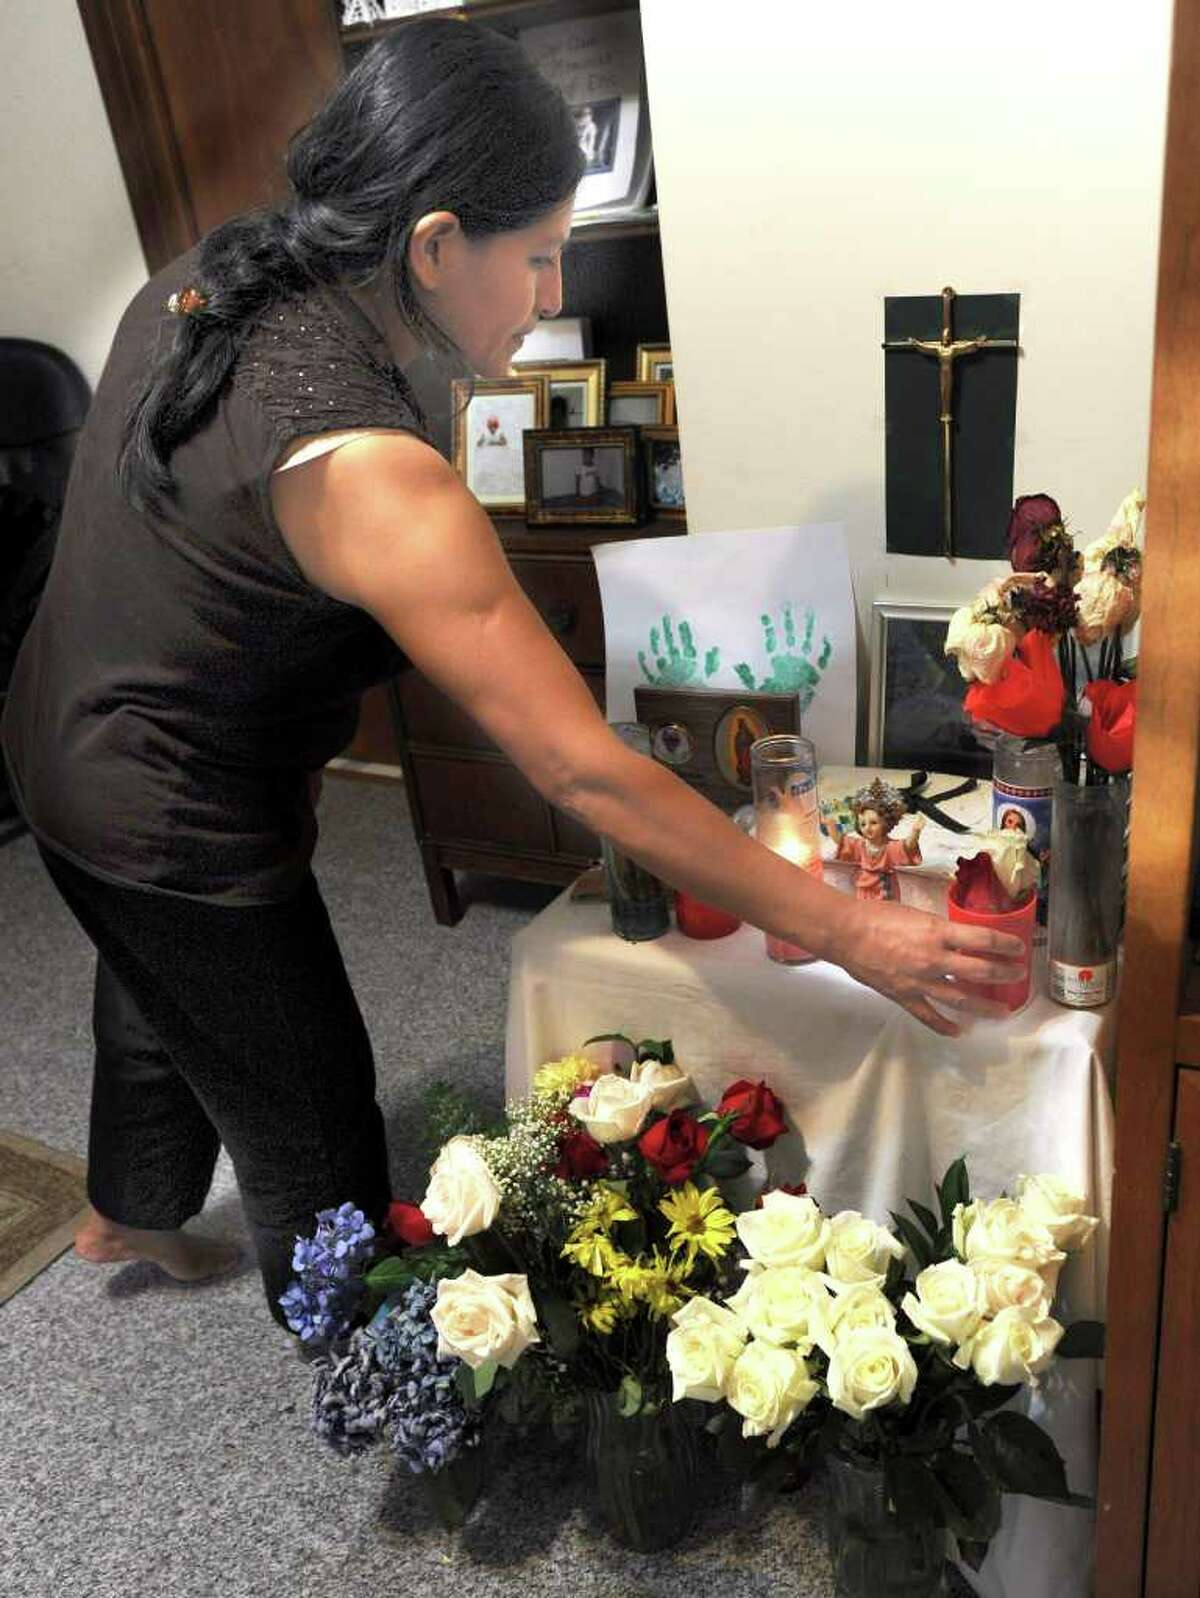 Sonia Zhunio tends to a memorial in her home for her son, Eric,4, who died after being hit by a truck in front of their Stevens Street home in Danbury.